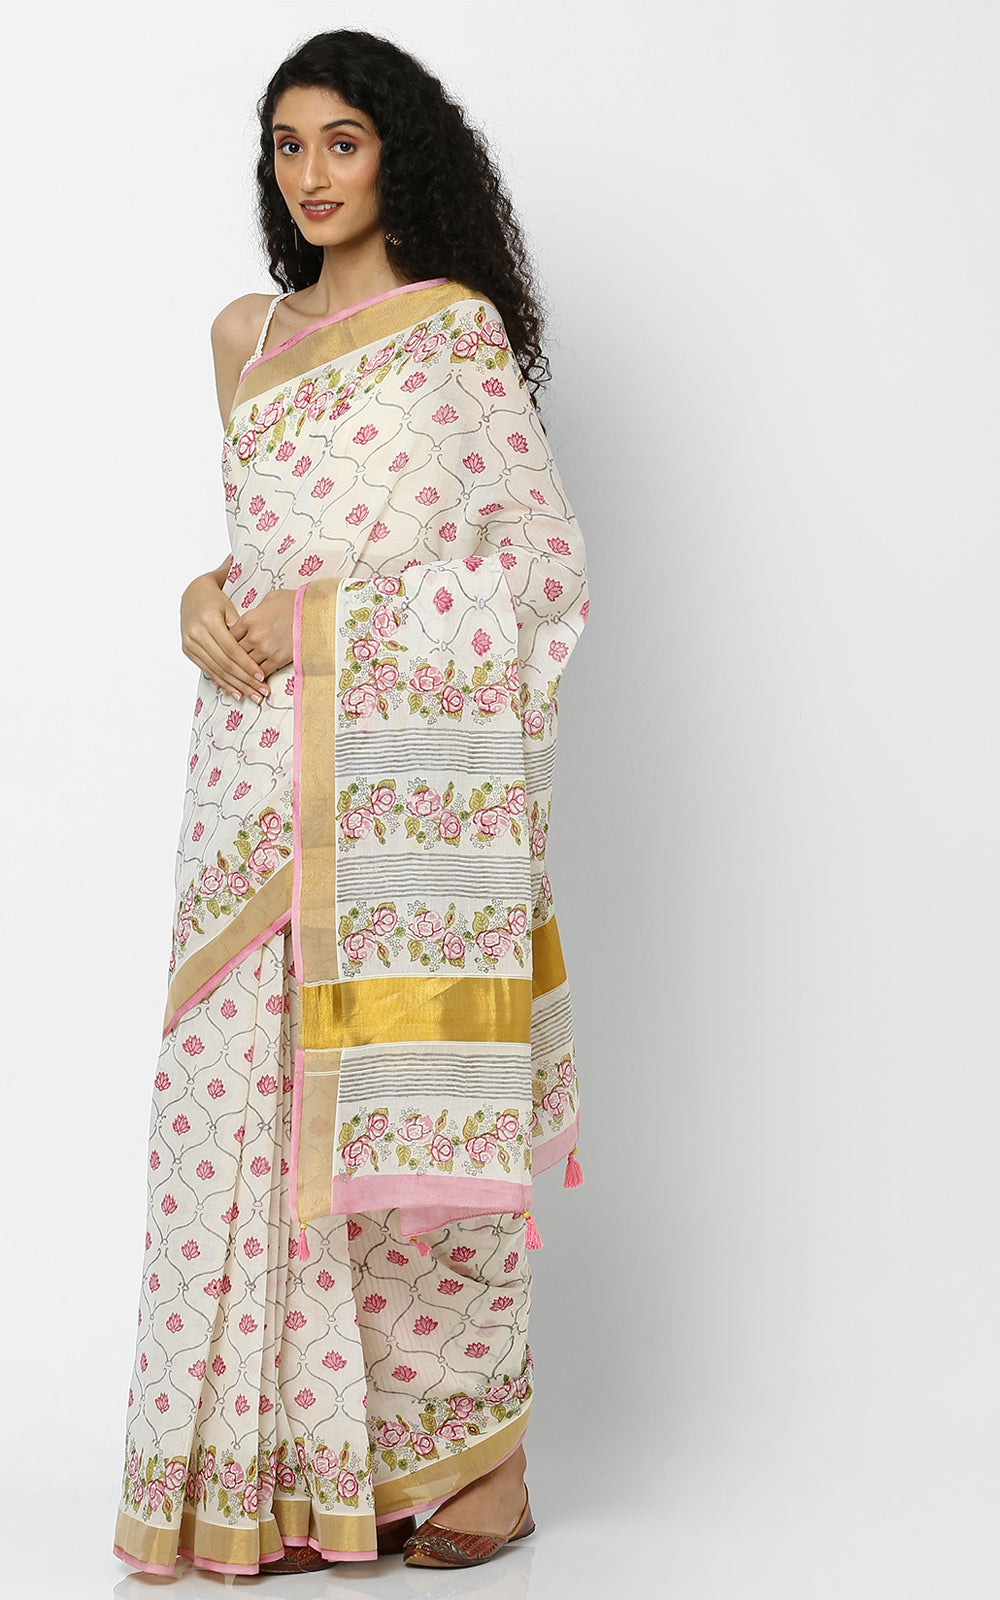 KERALA KASAVU SAREE WITH PINK HAND BLOCK PRINT